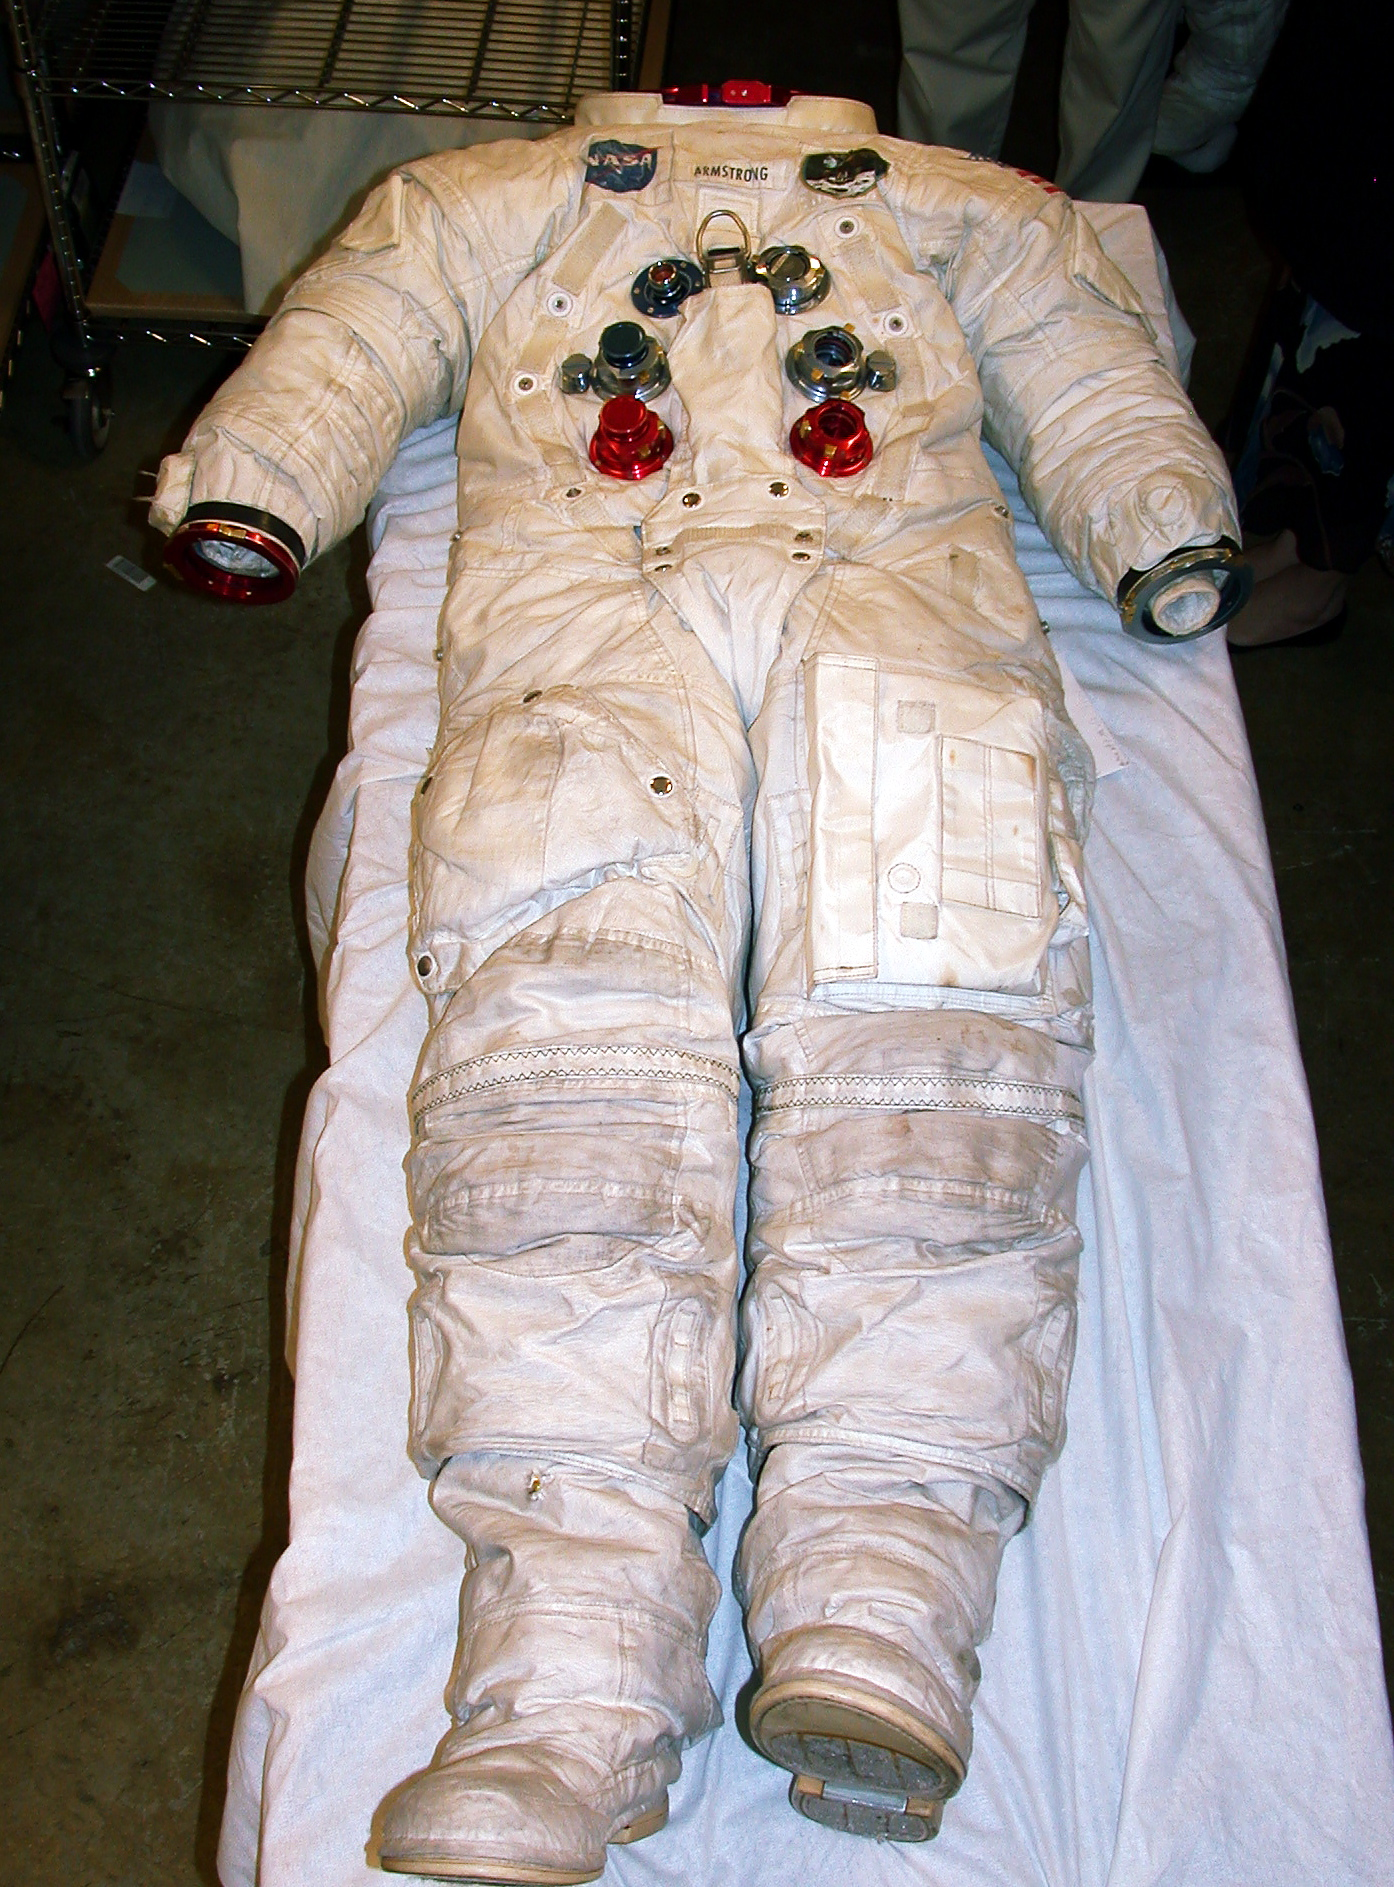 neil armstrong full suite - photo #20